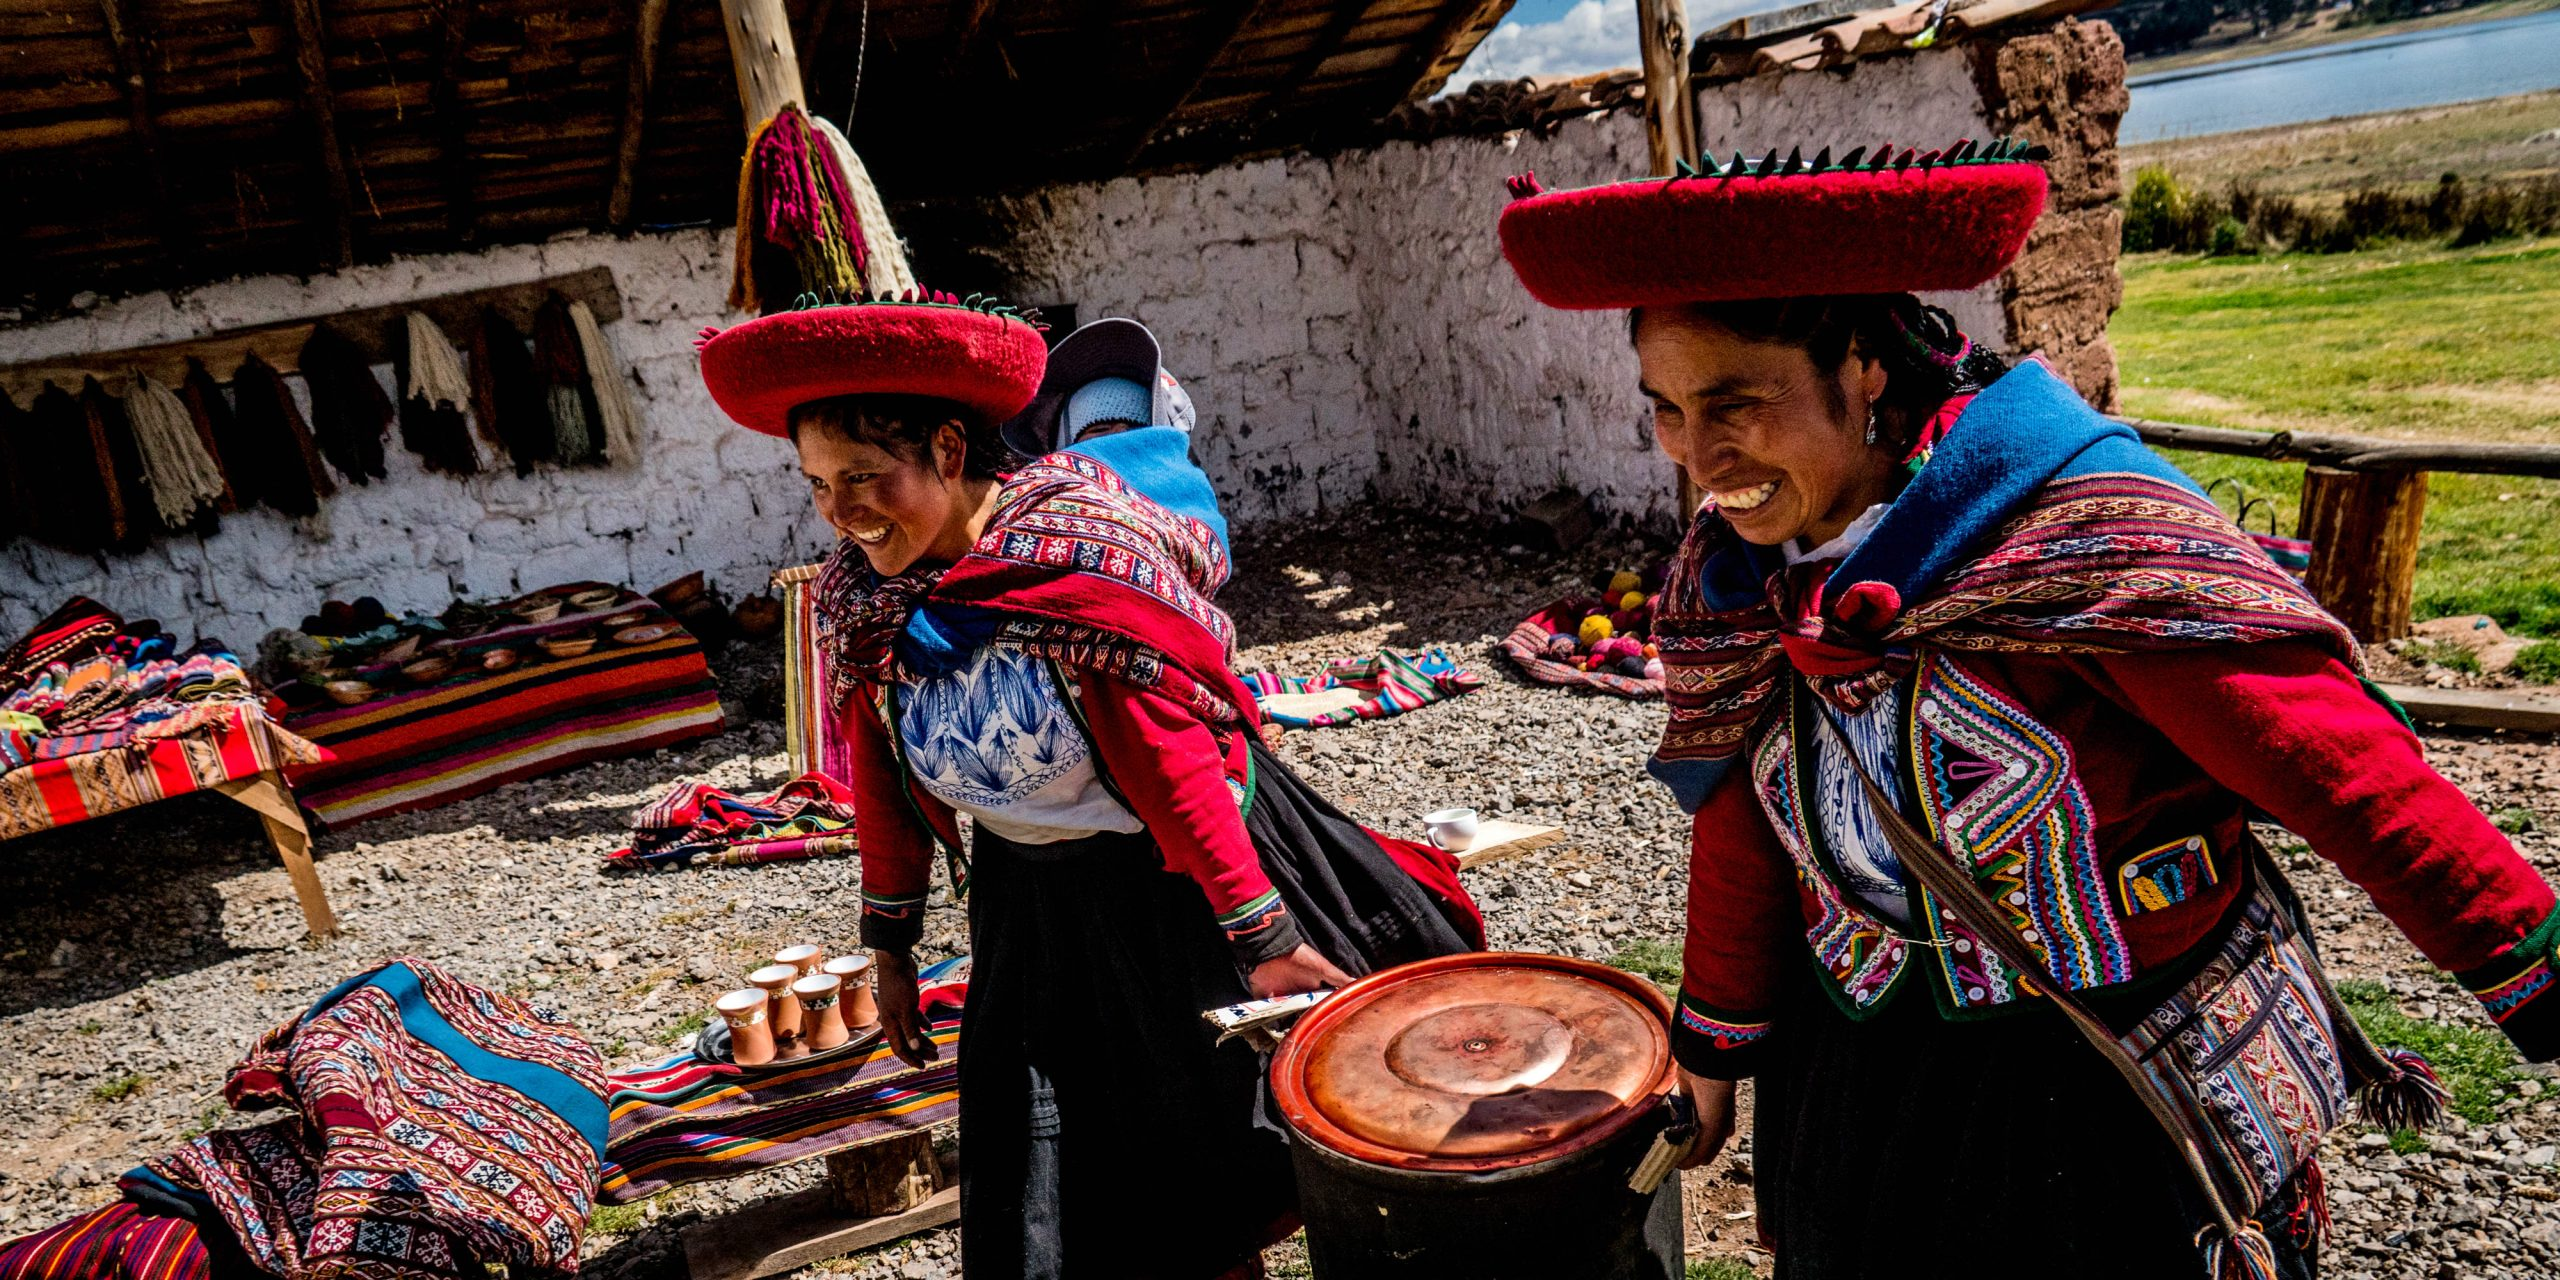 GVI volunteers in Cusco work together with local Peruvian people to make a sustainable impact